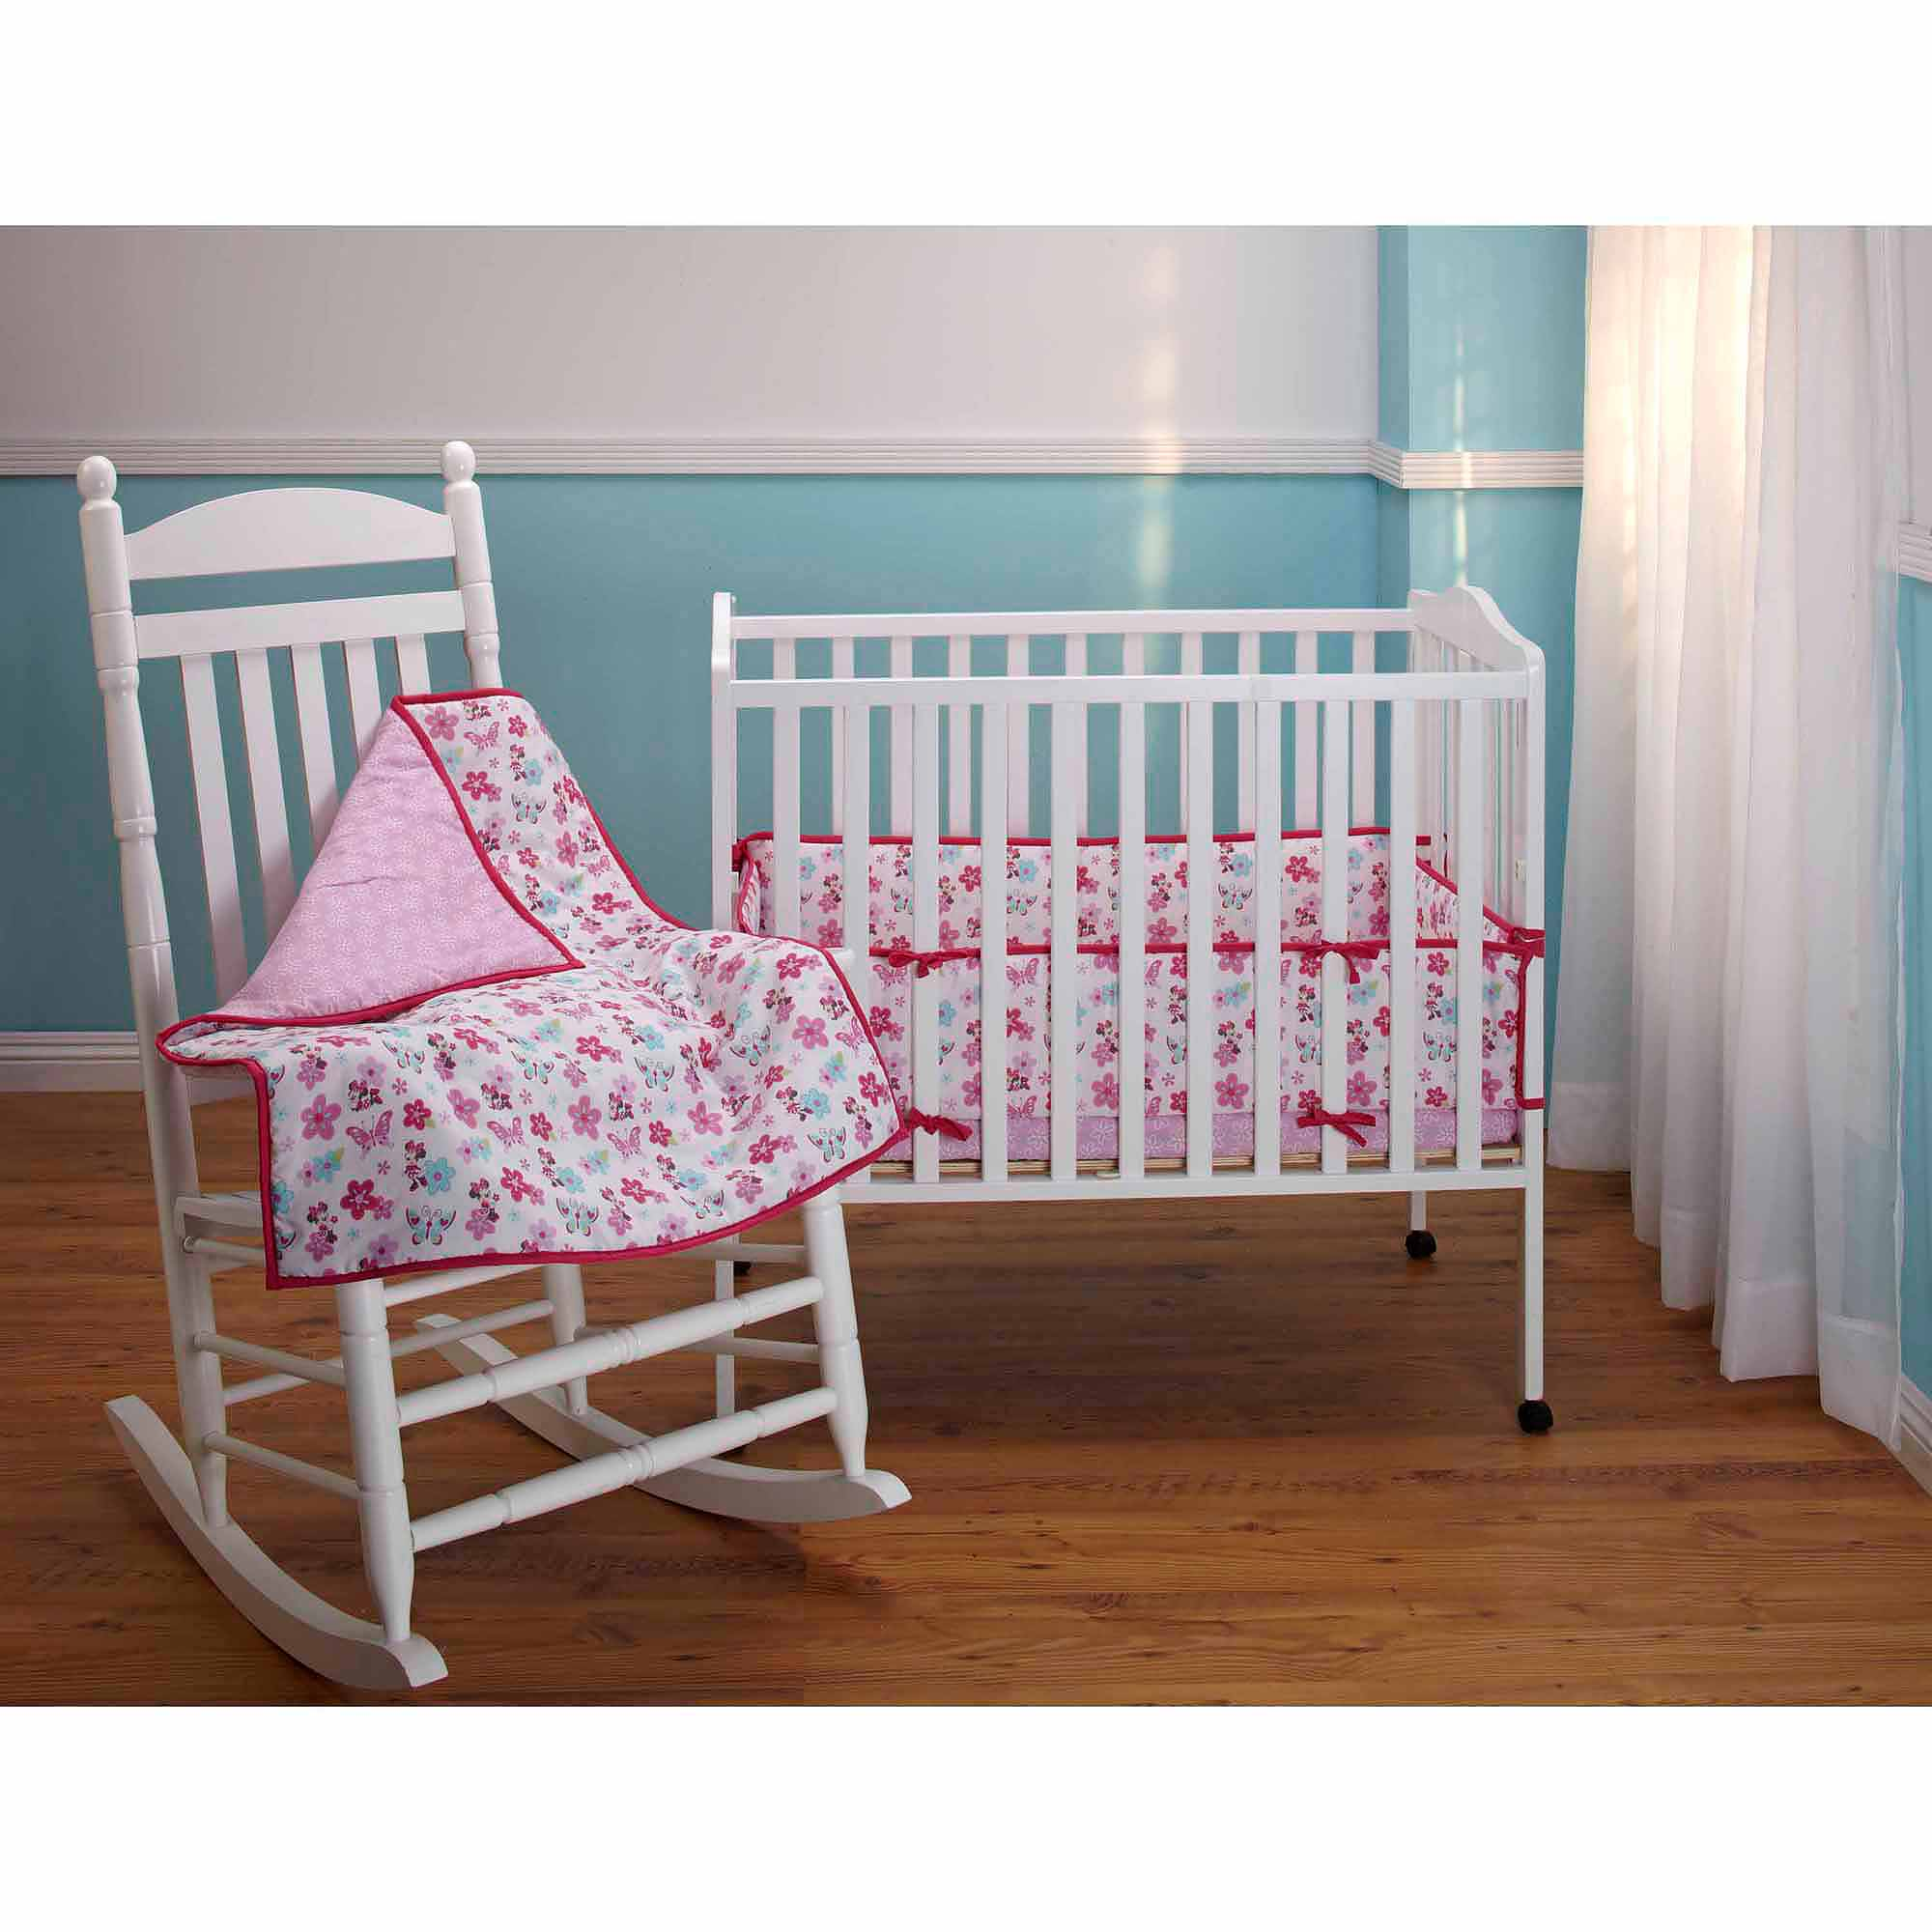 Disney Baby Bedding Minnie Mouse Portable Crib Bumper